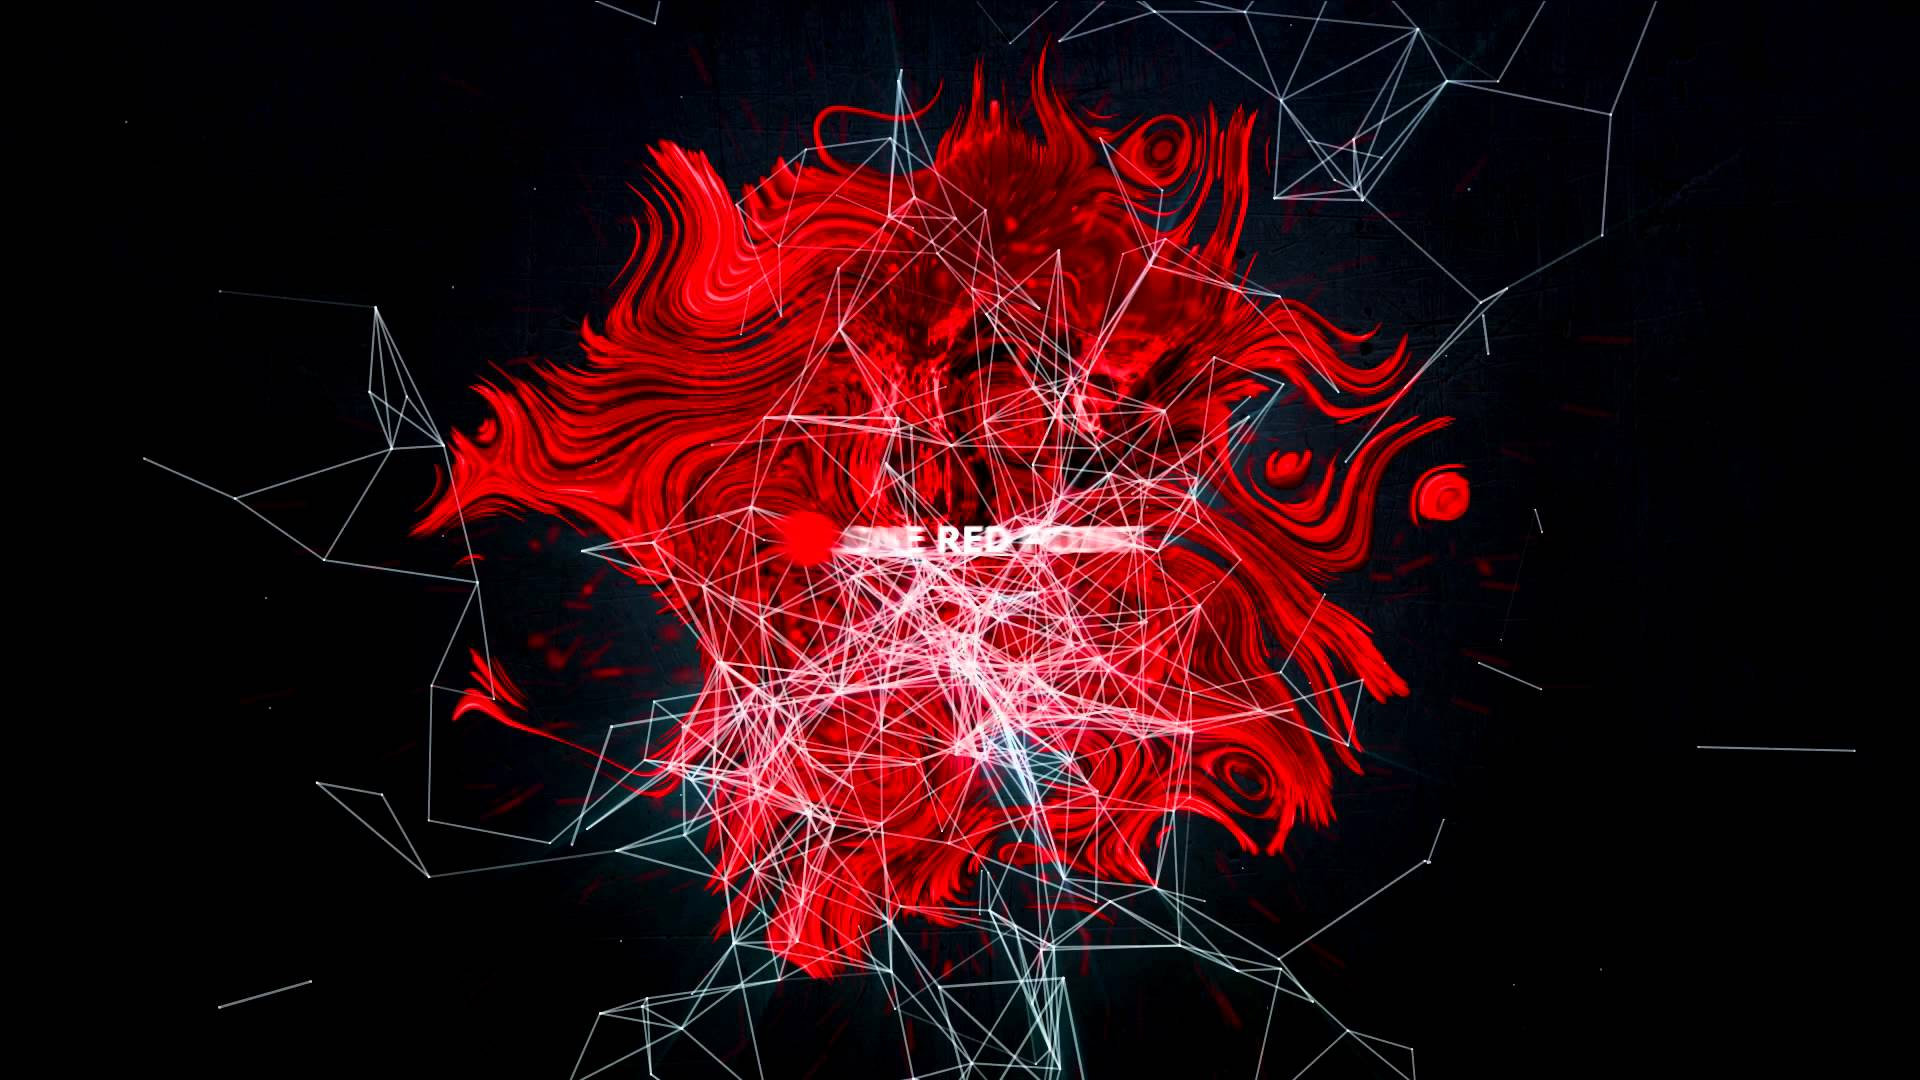 Red graphics picture library download One Red Point - motion graphics - YouTube picture library download